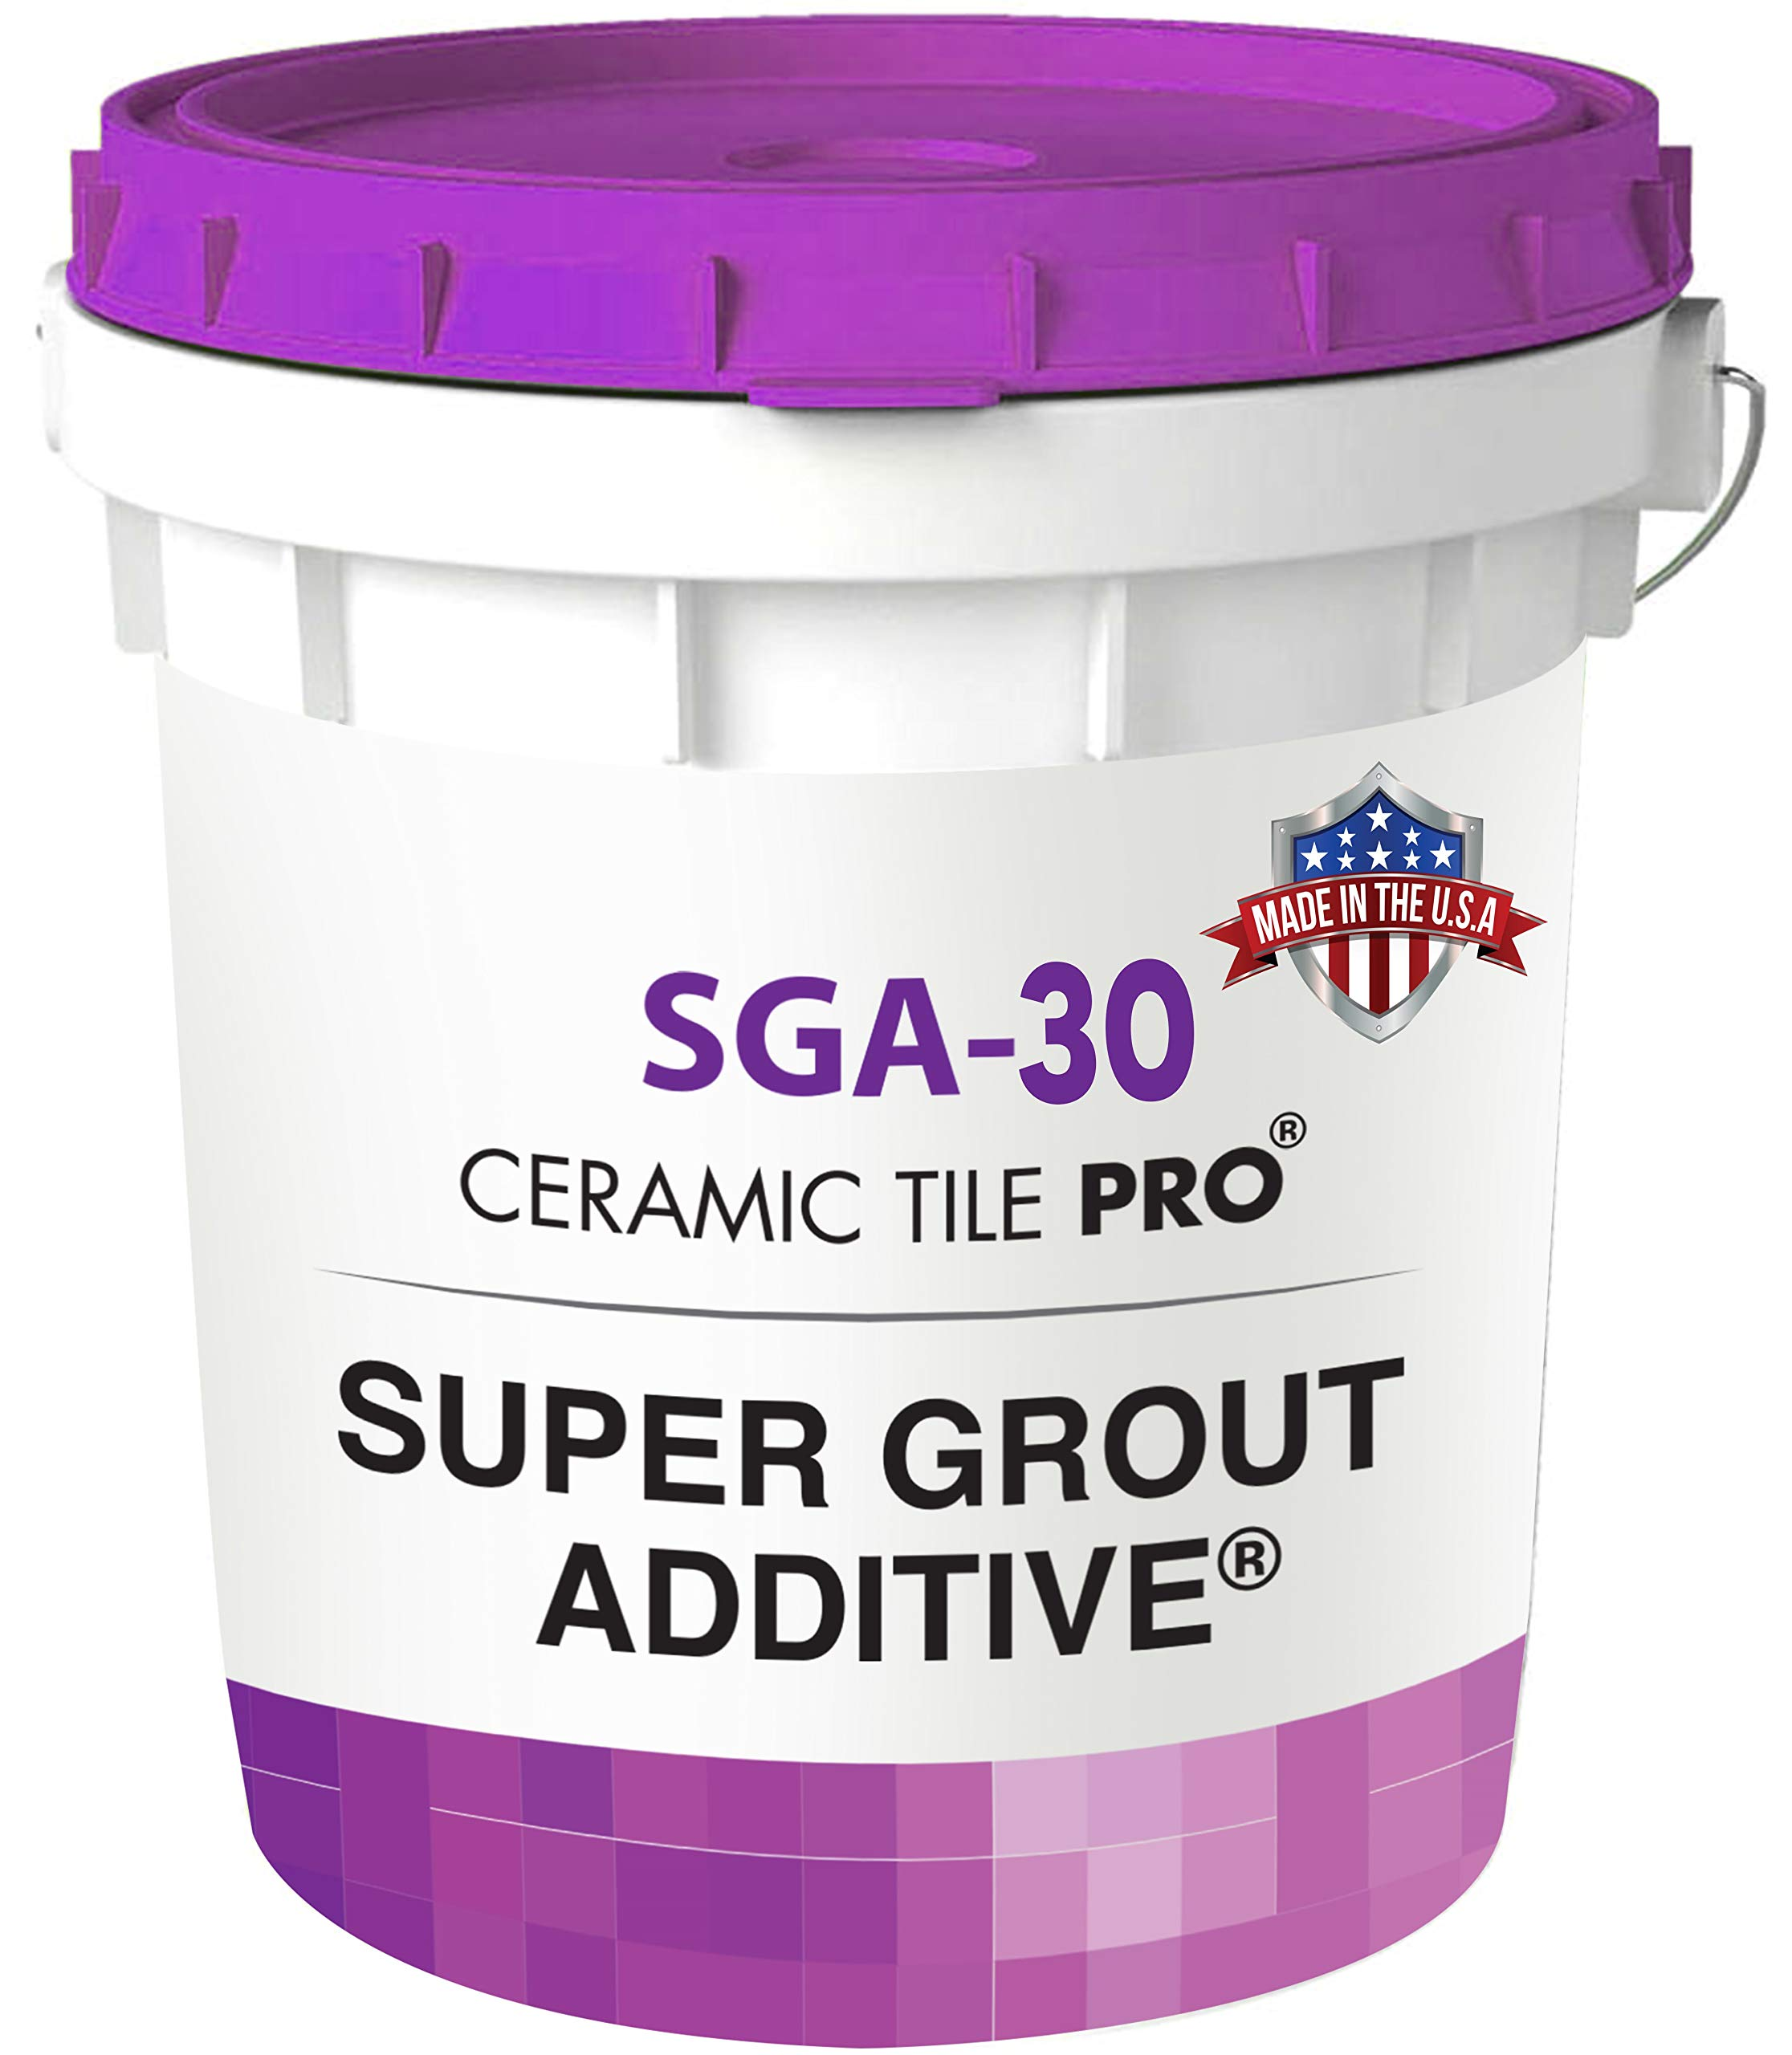 Sga 30 Super Grout Additive Premium Waterproof Tile Grout Repair Adhesive Grout Sold Separately Kit